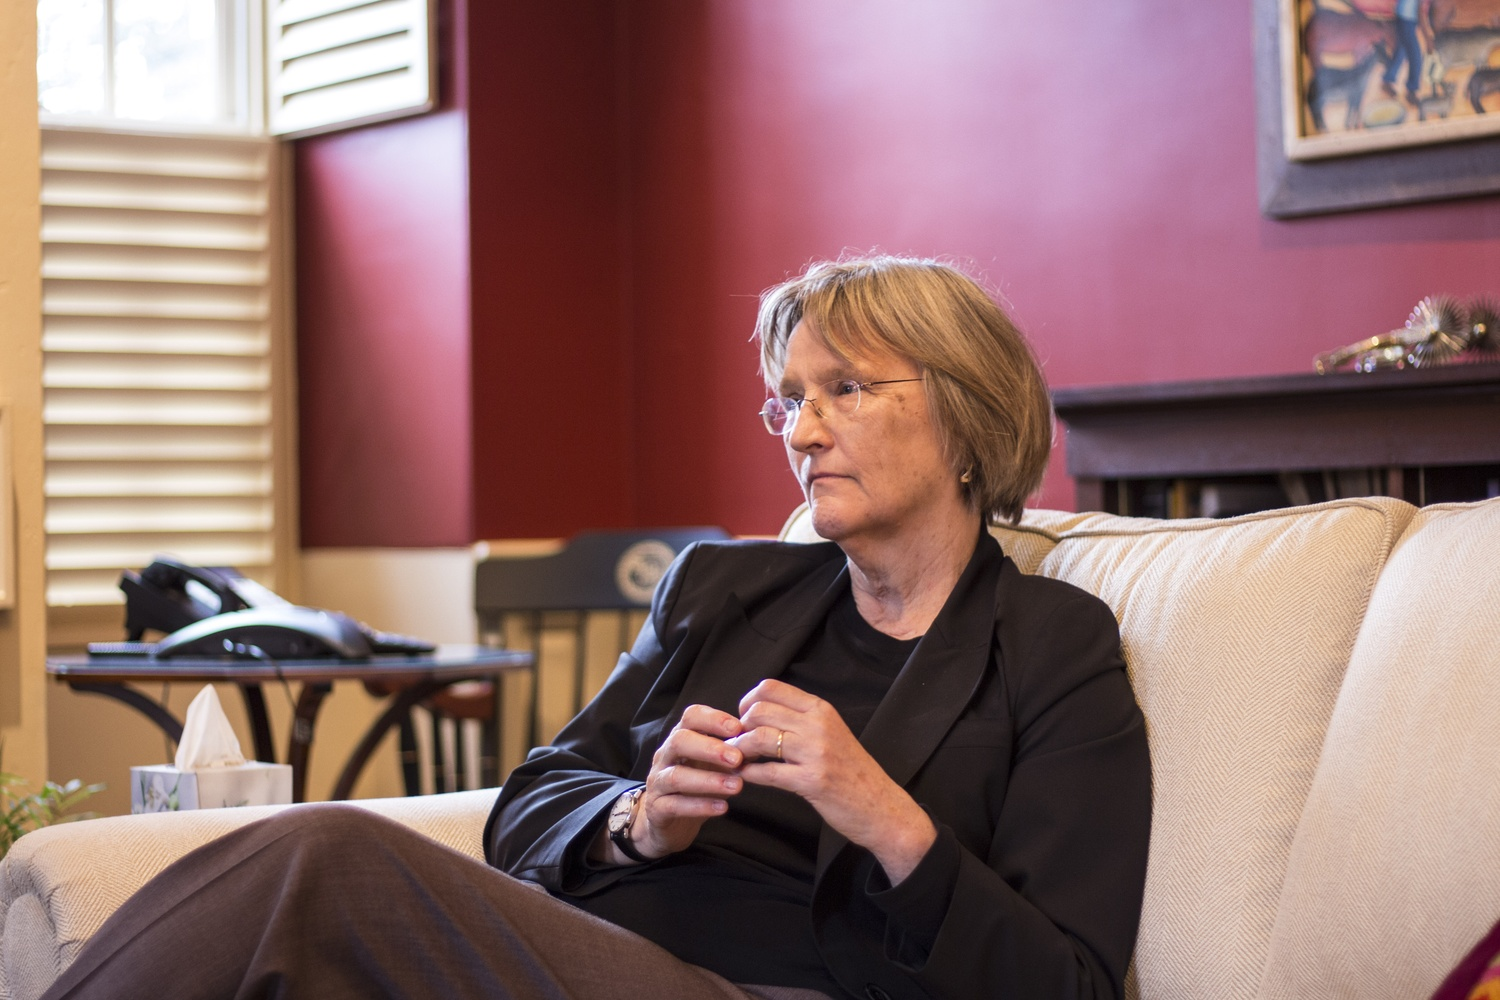 University President Drew G. Faust in an interview last spring.